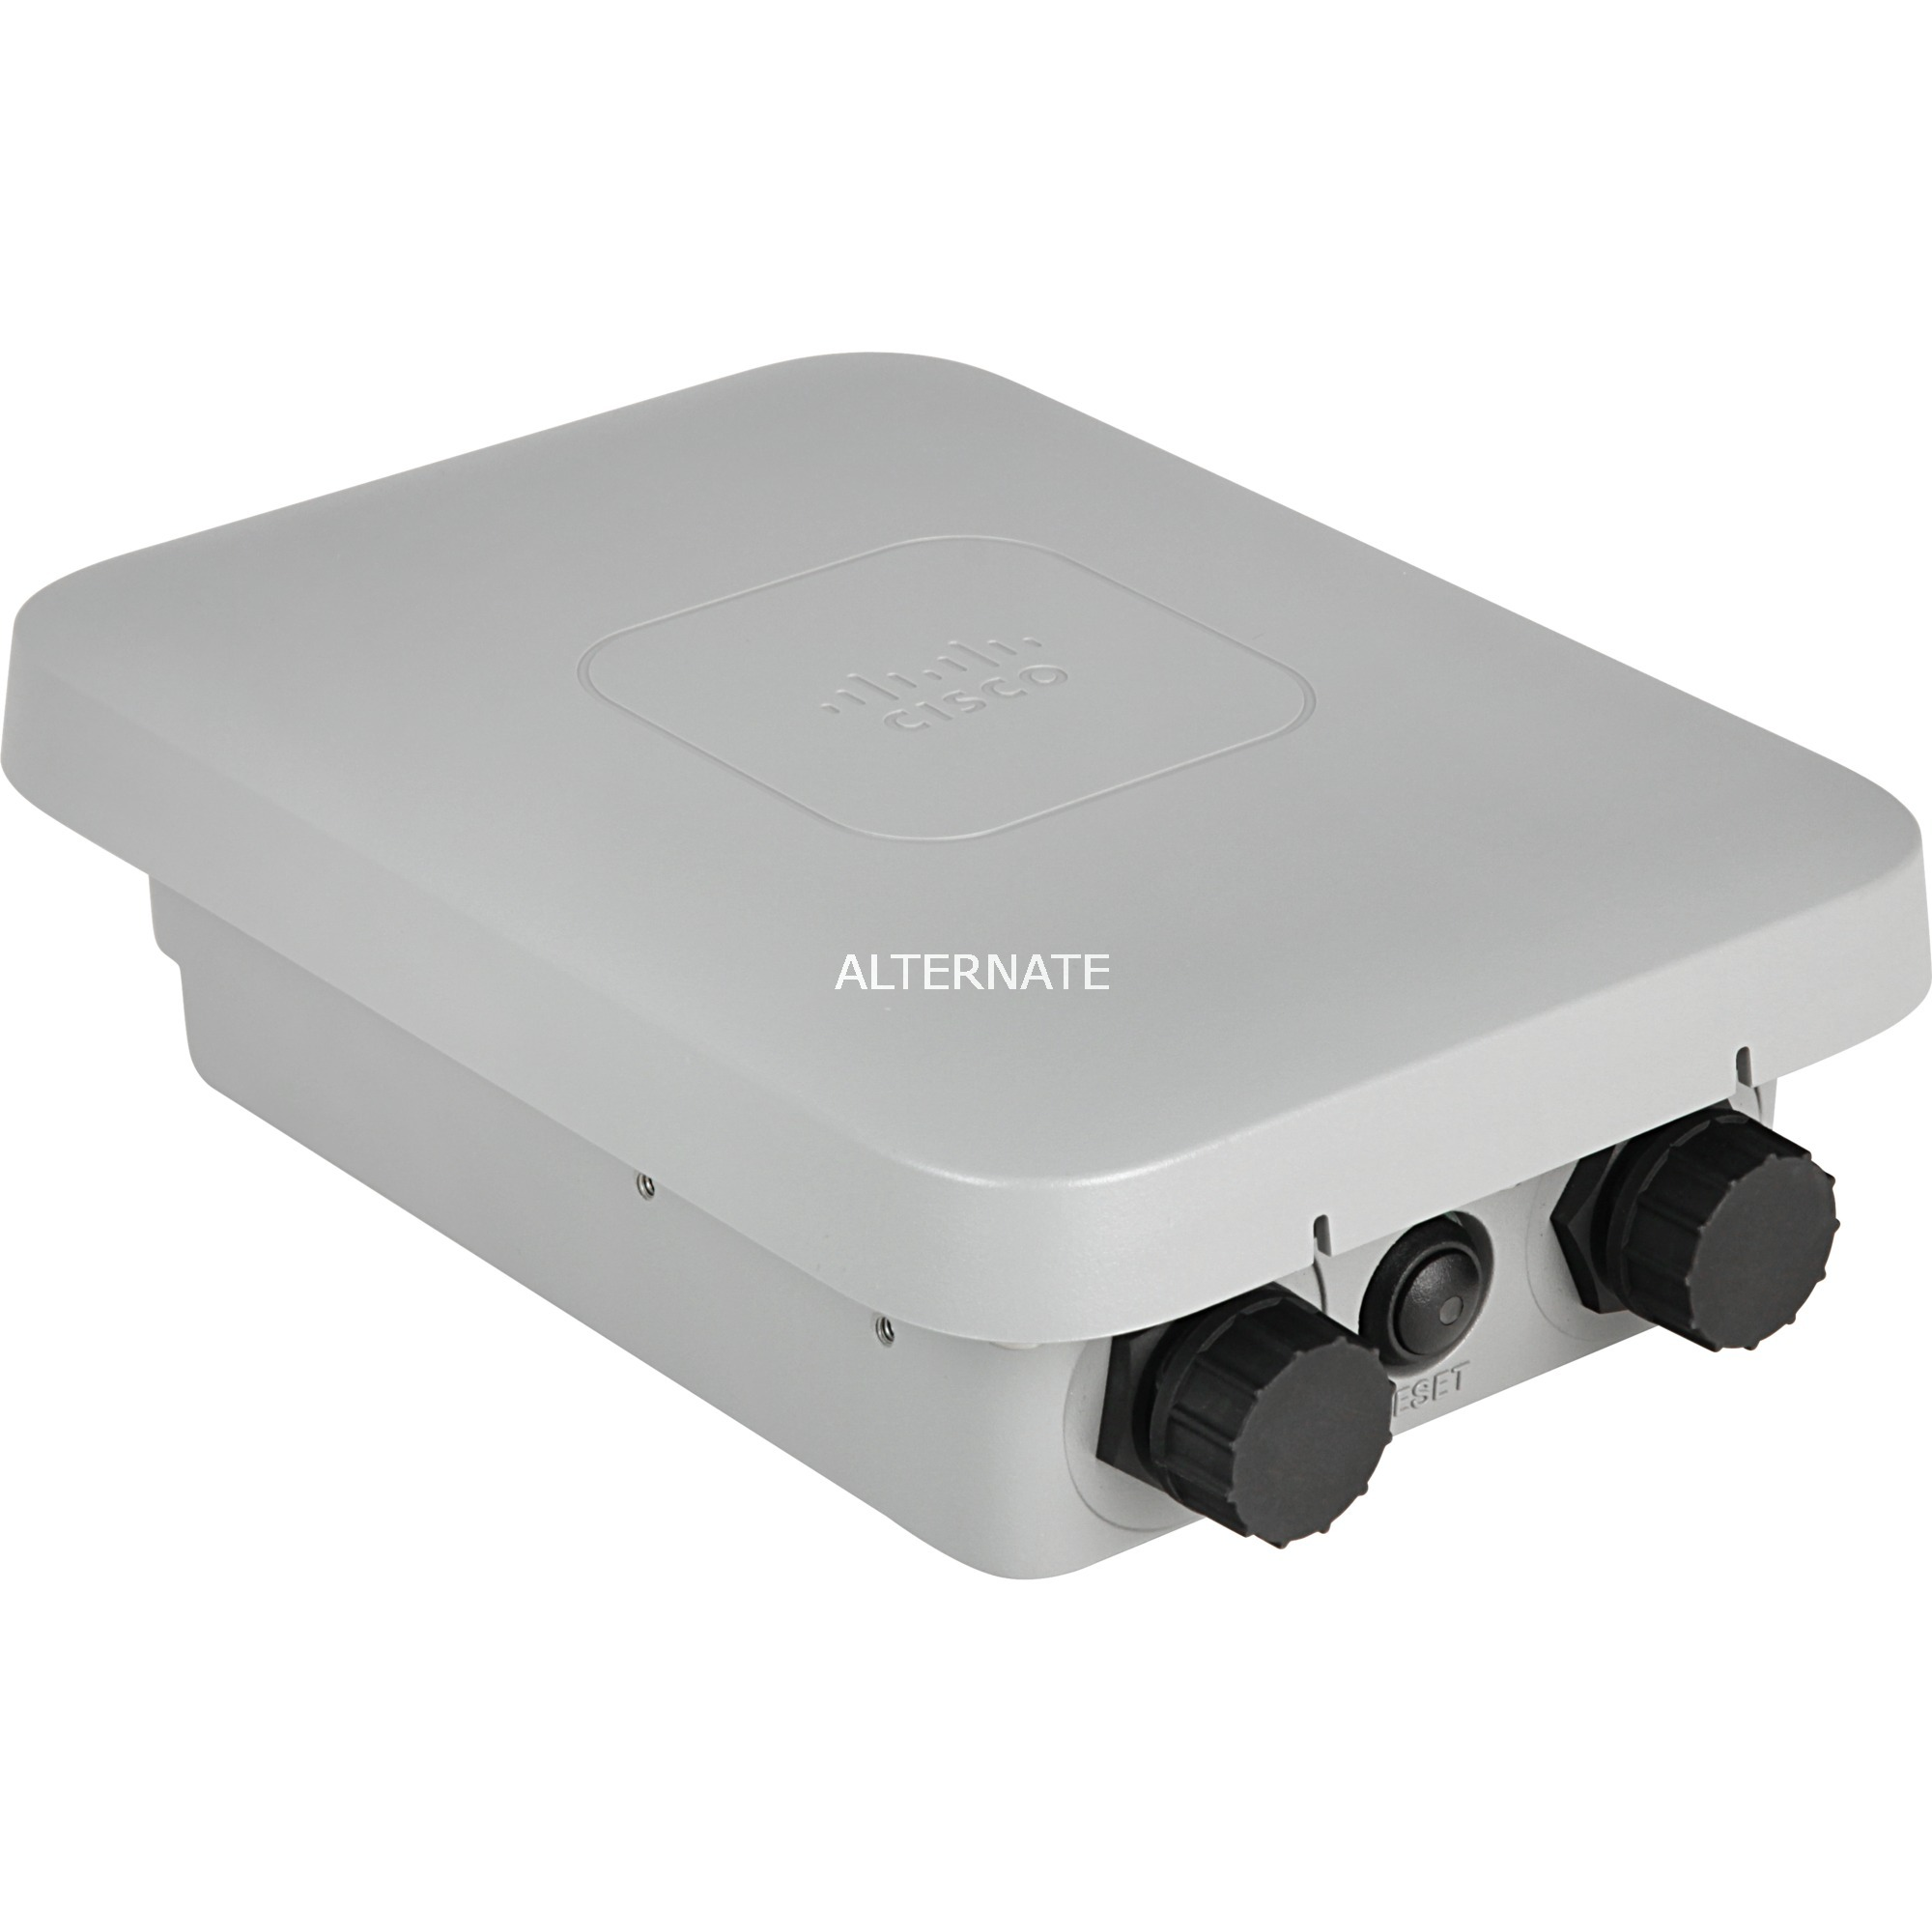 Image of Aironet 1540i, Access Point